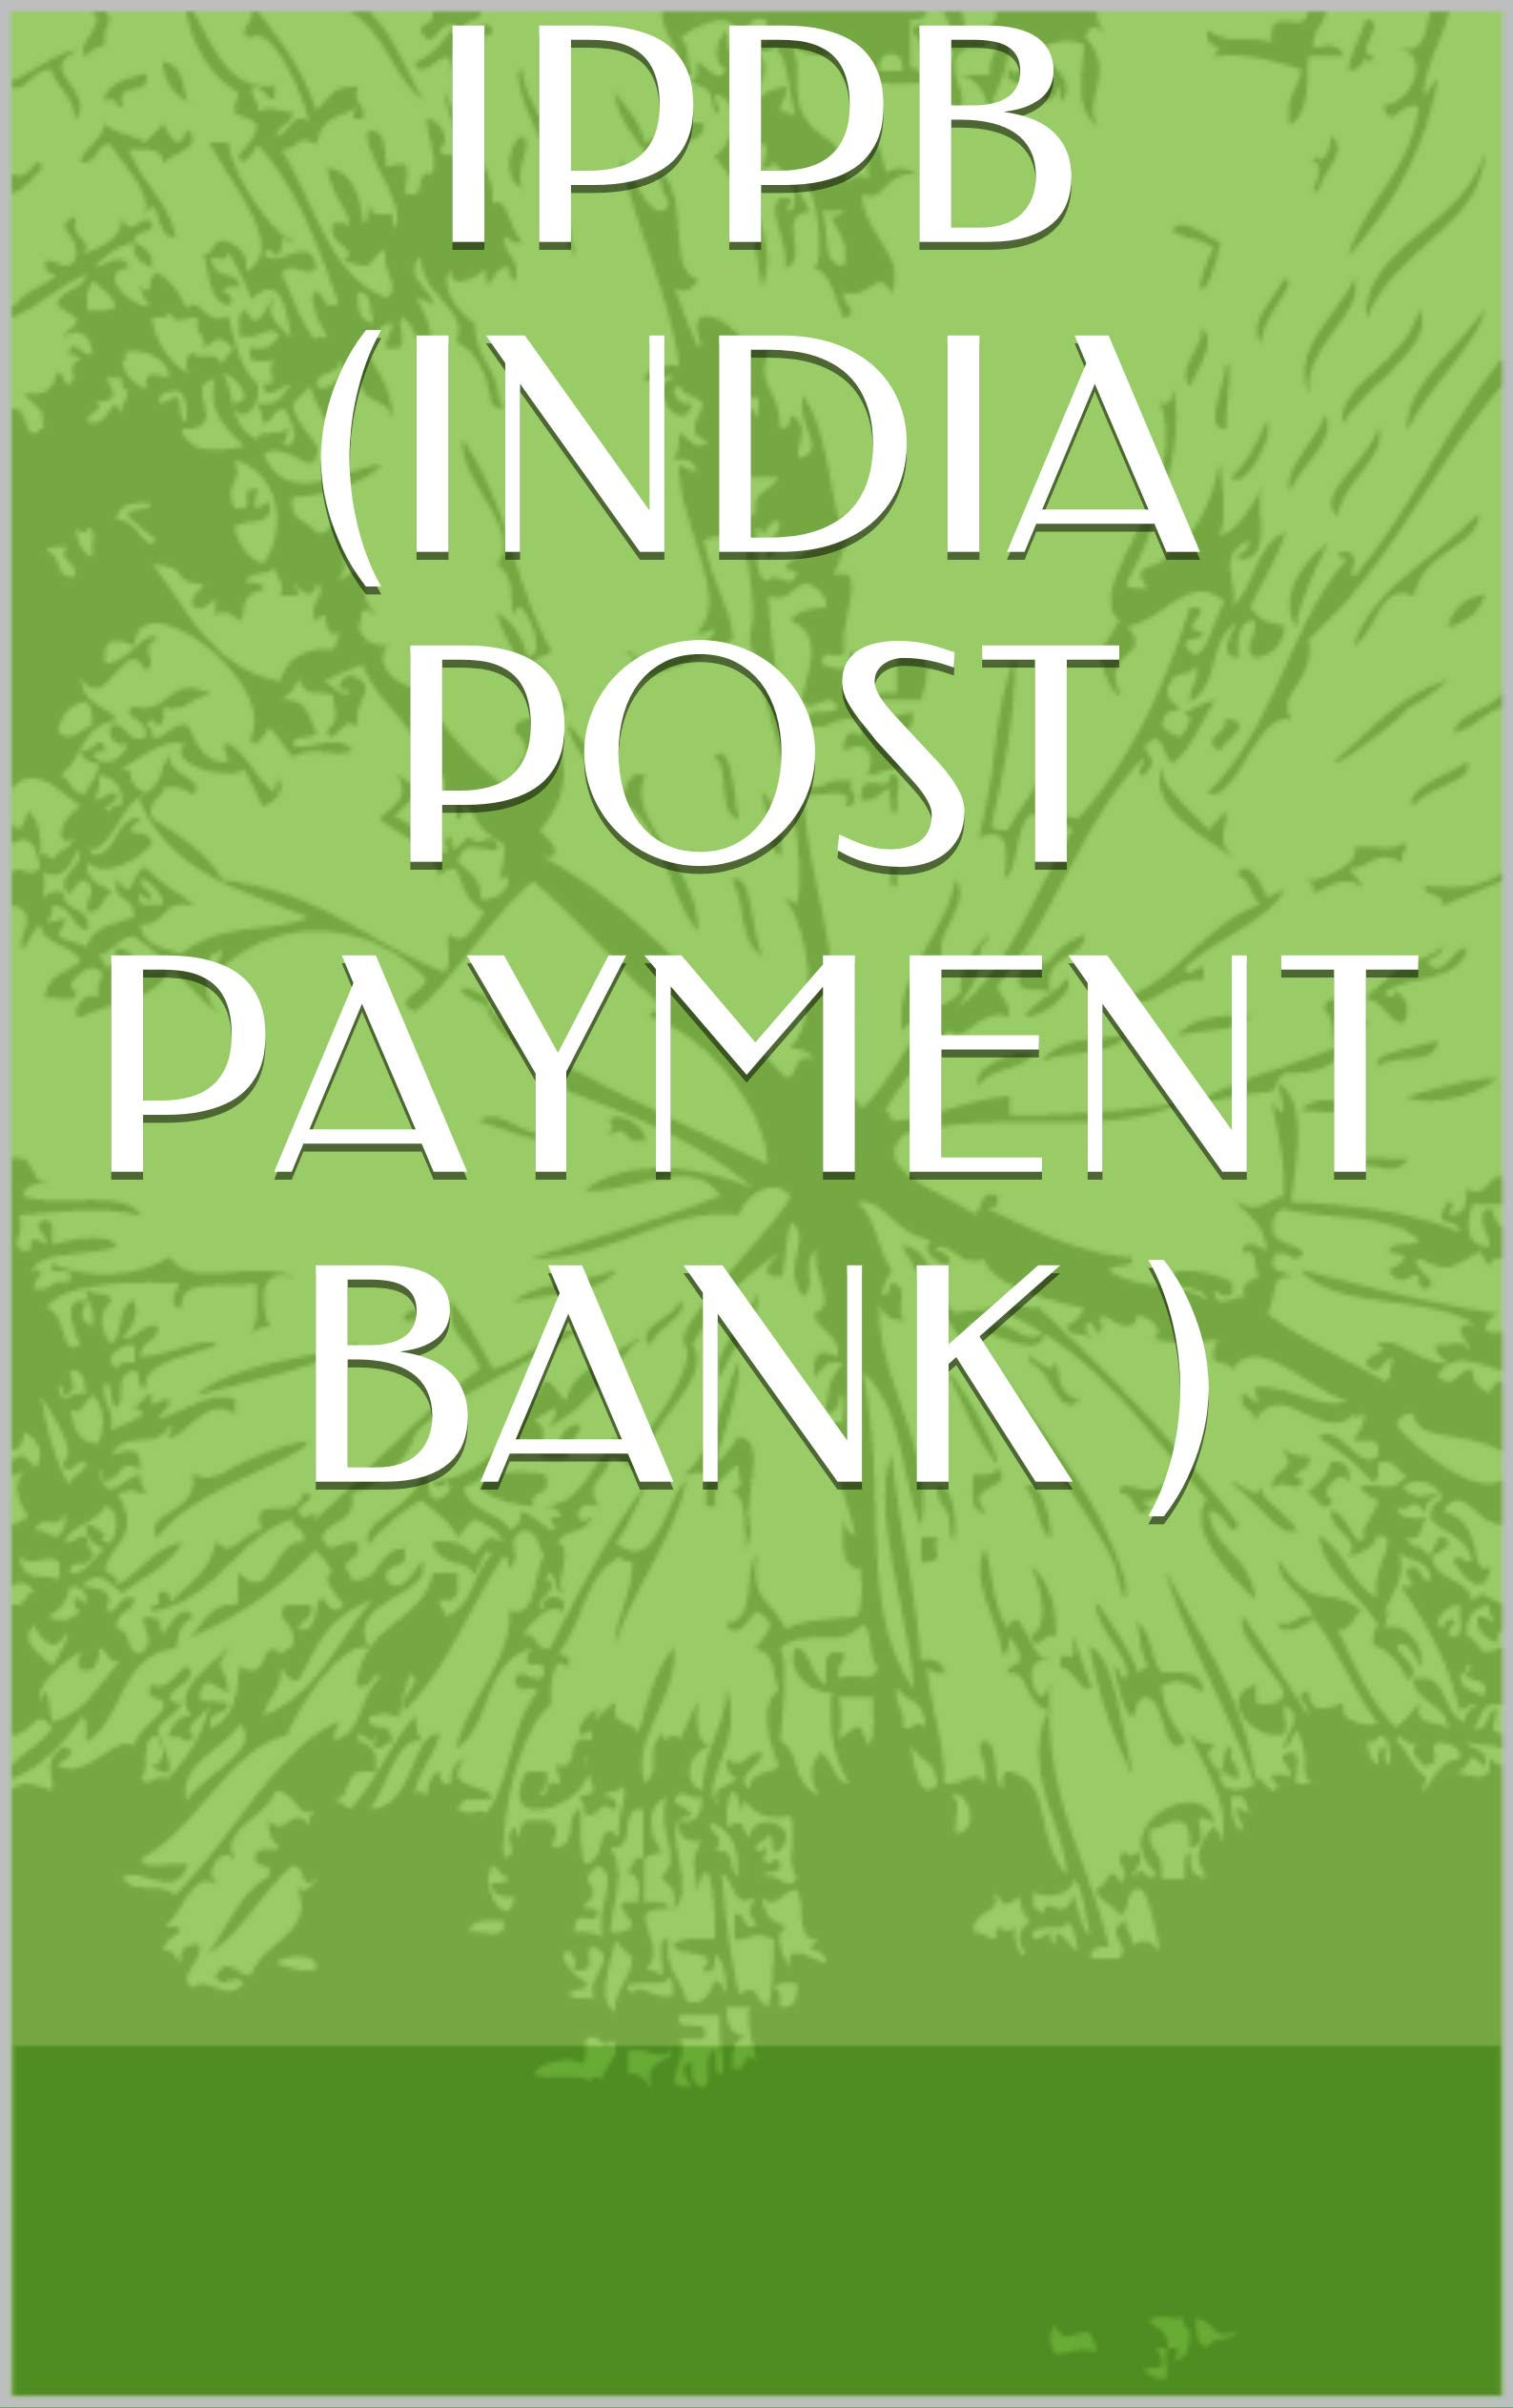 IPPB (INDIA POST PAYMENT BANK ) (3)